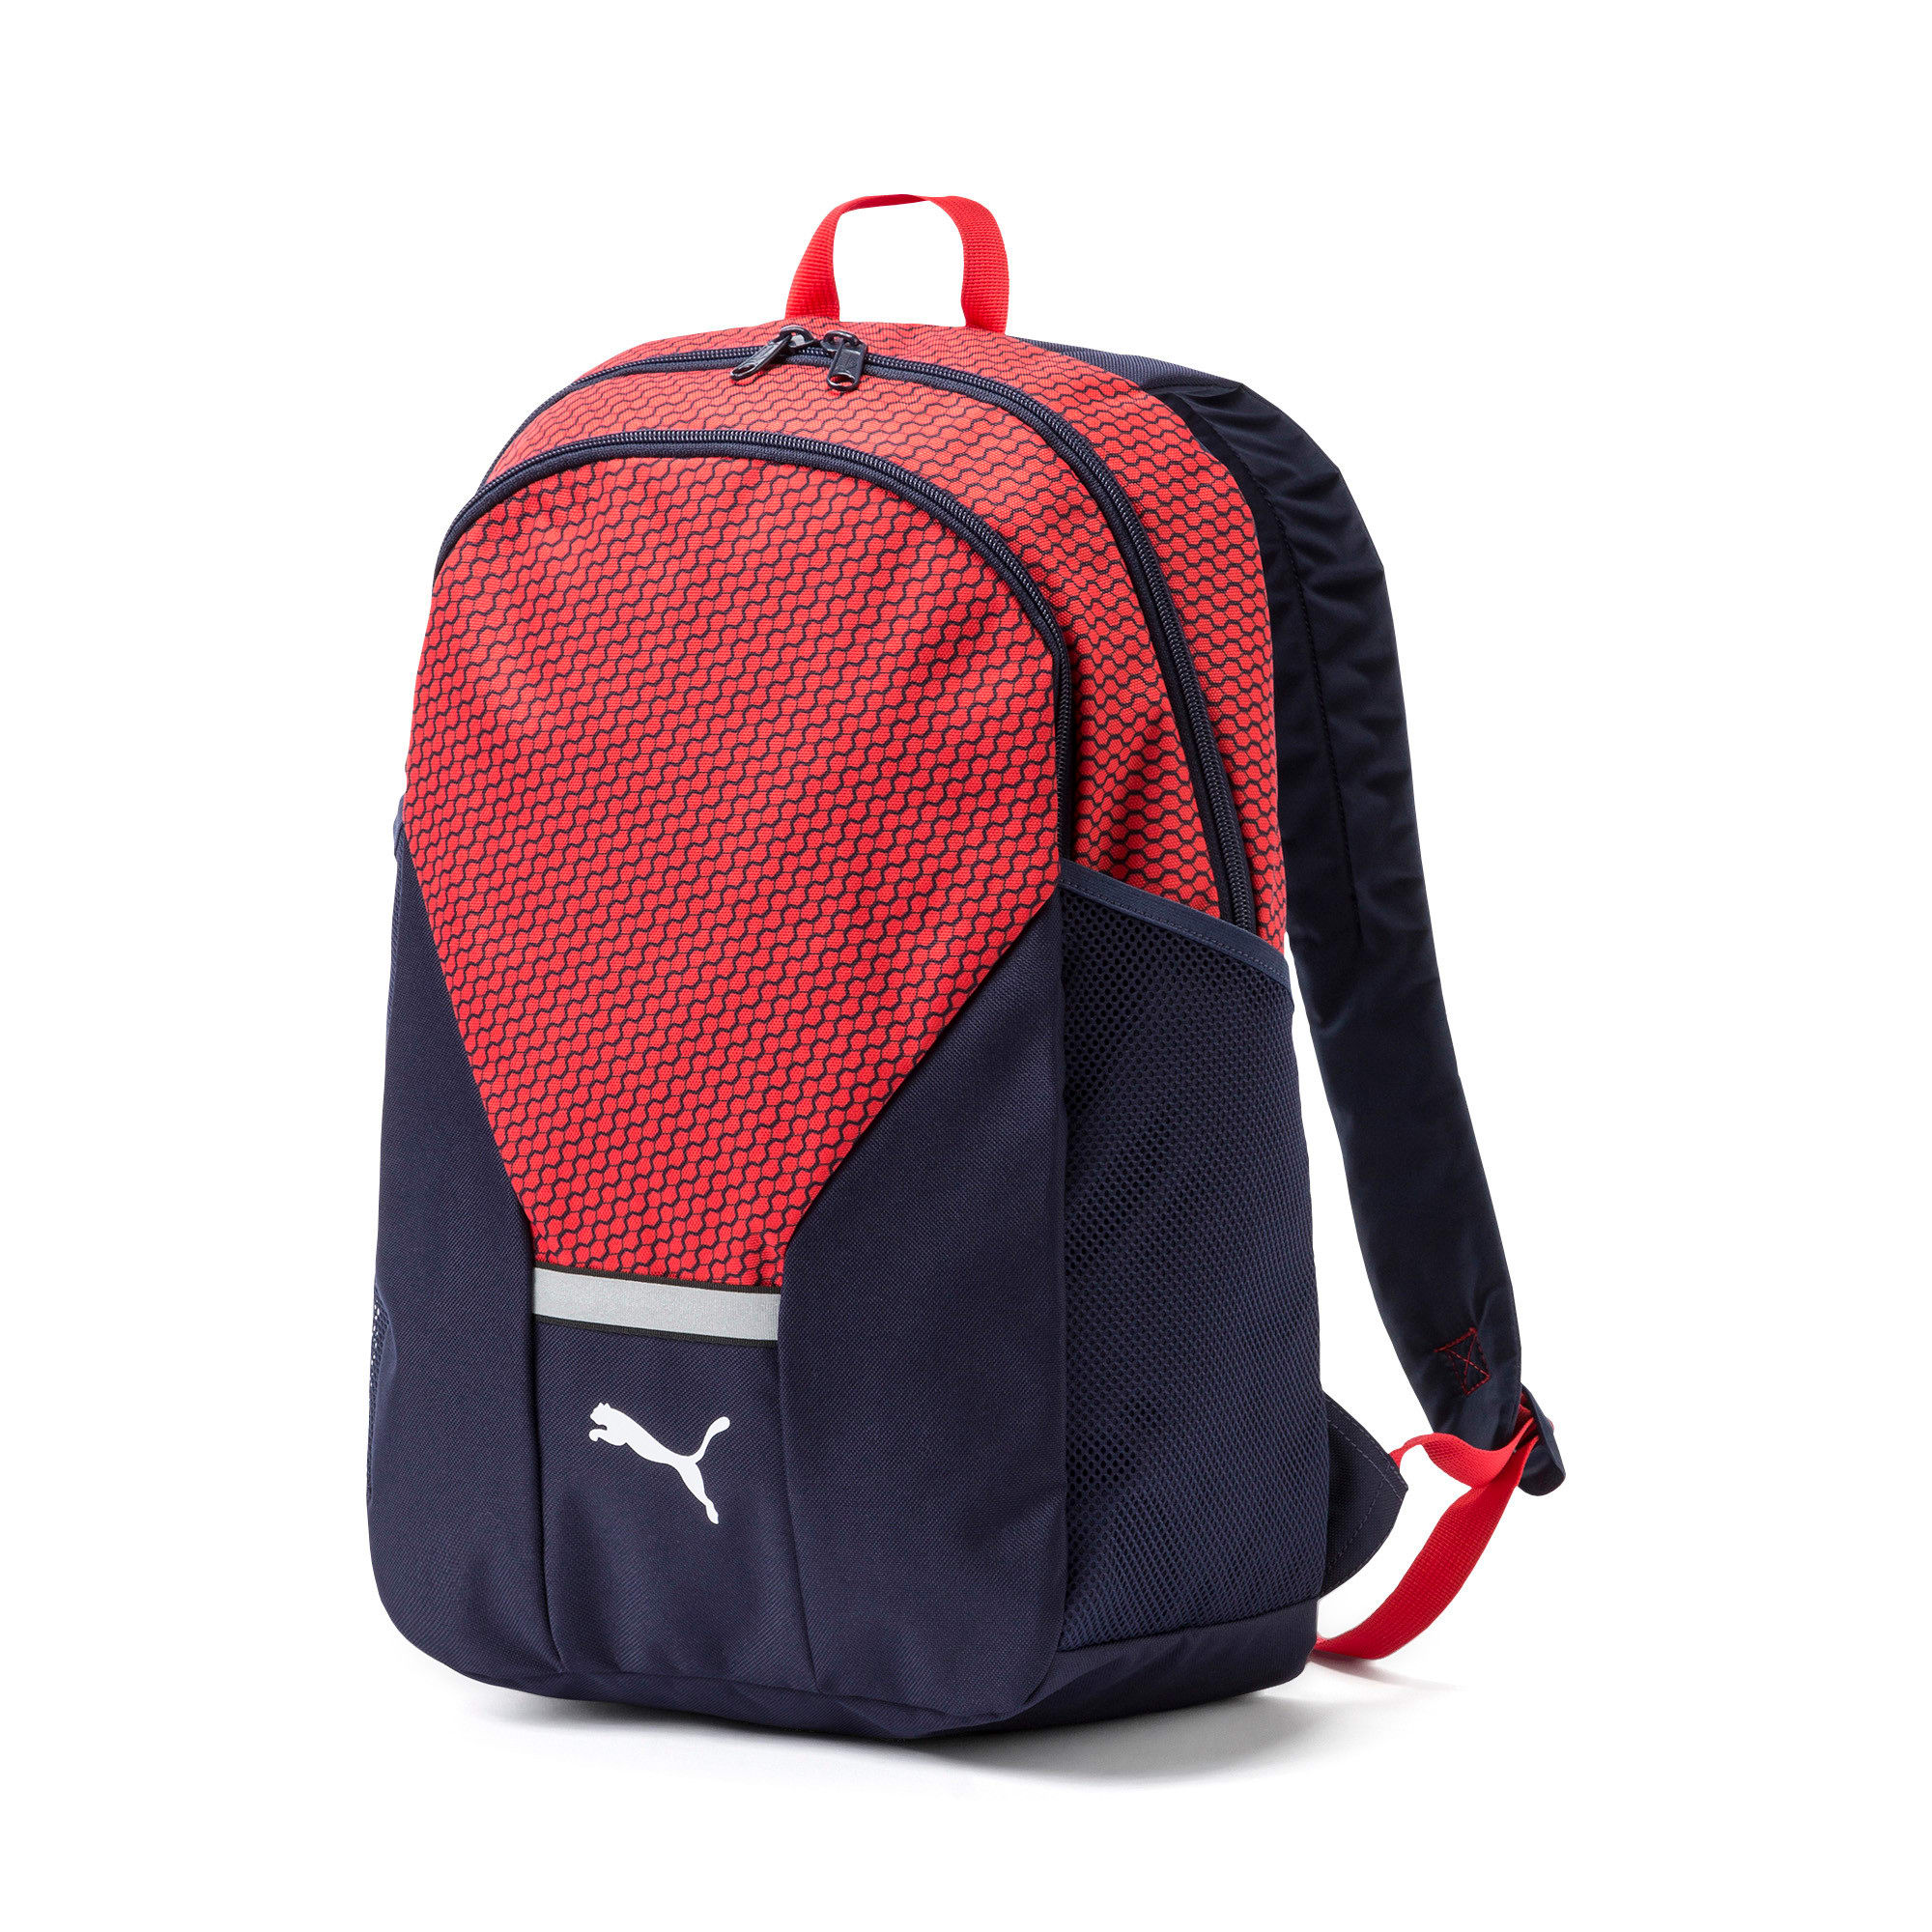 Thumbnail 1 of Beta Backpack, High Risk Red-Peacoat, medium-IND